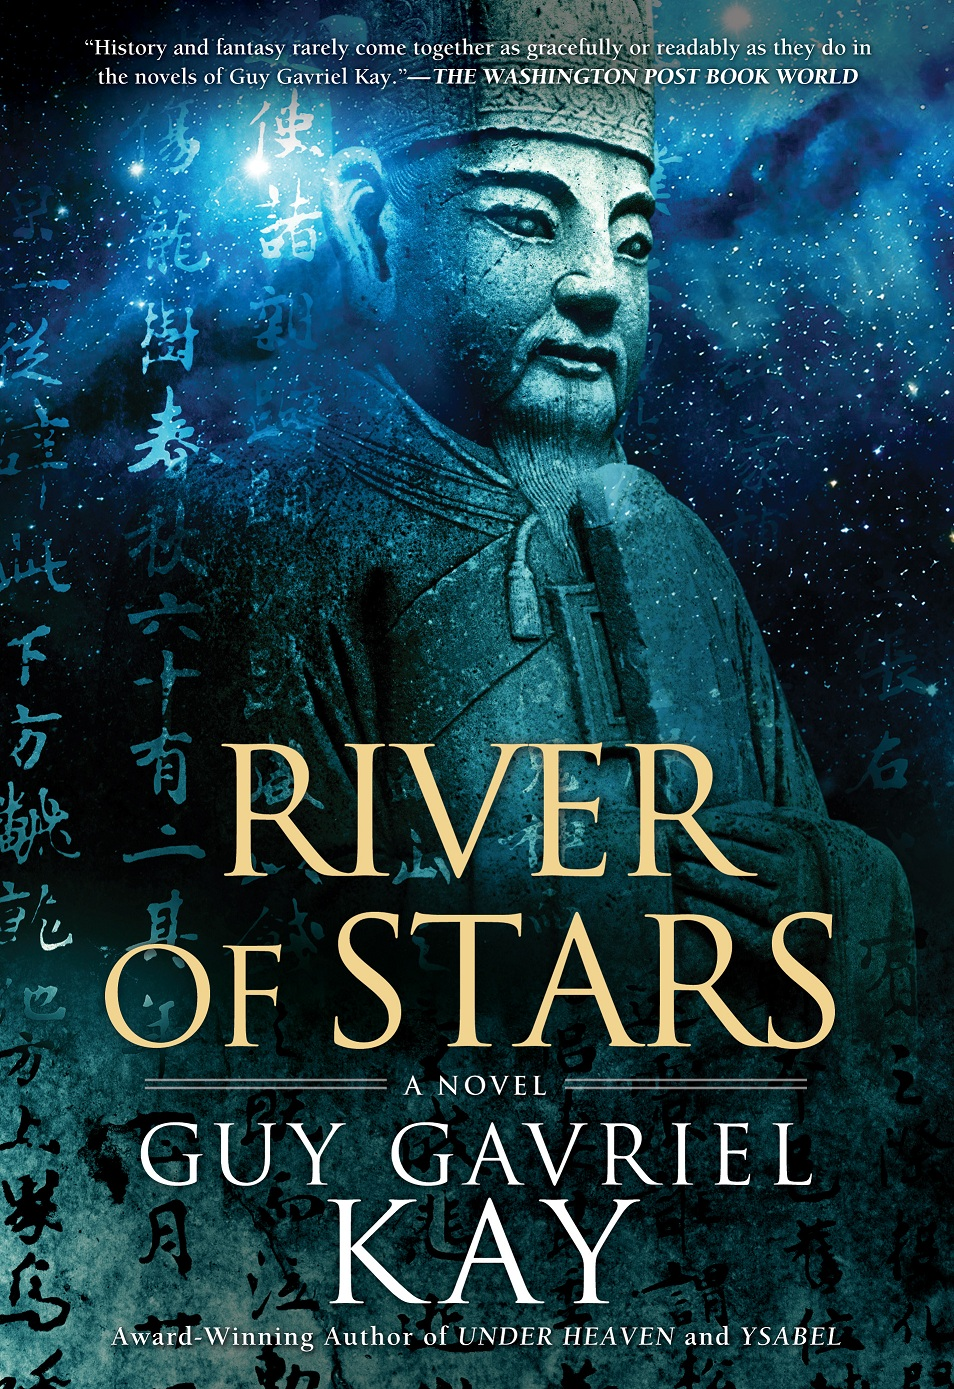 US/Can hardback edition of River of Stars